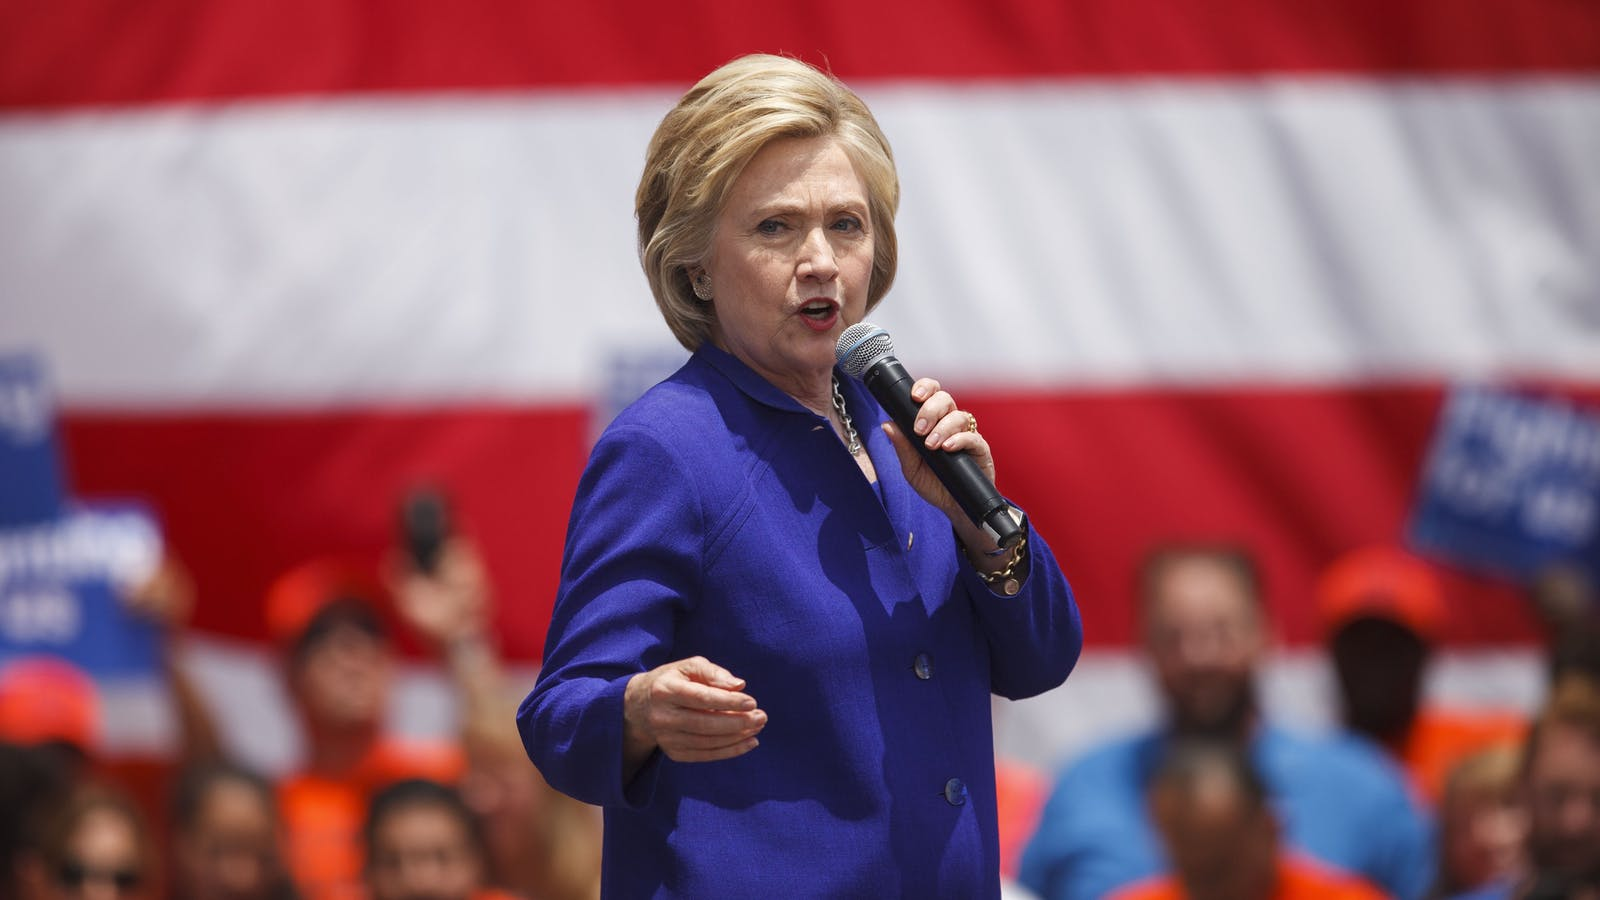 Presumptive Democratic Presidential Nominee Hillary Clinton. Photo by Bloomberg.